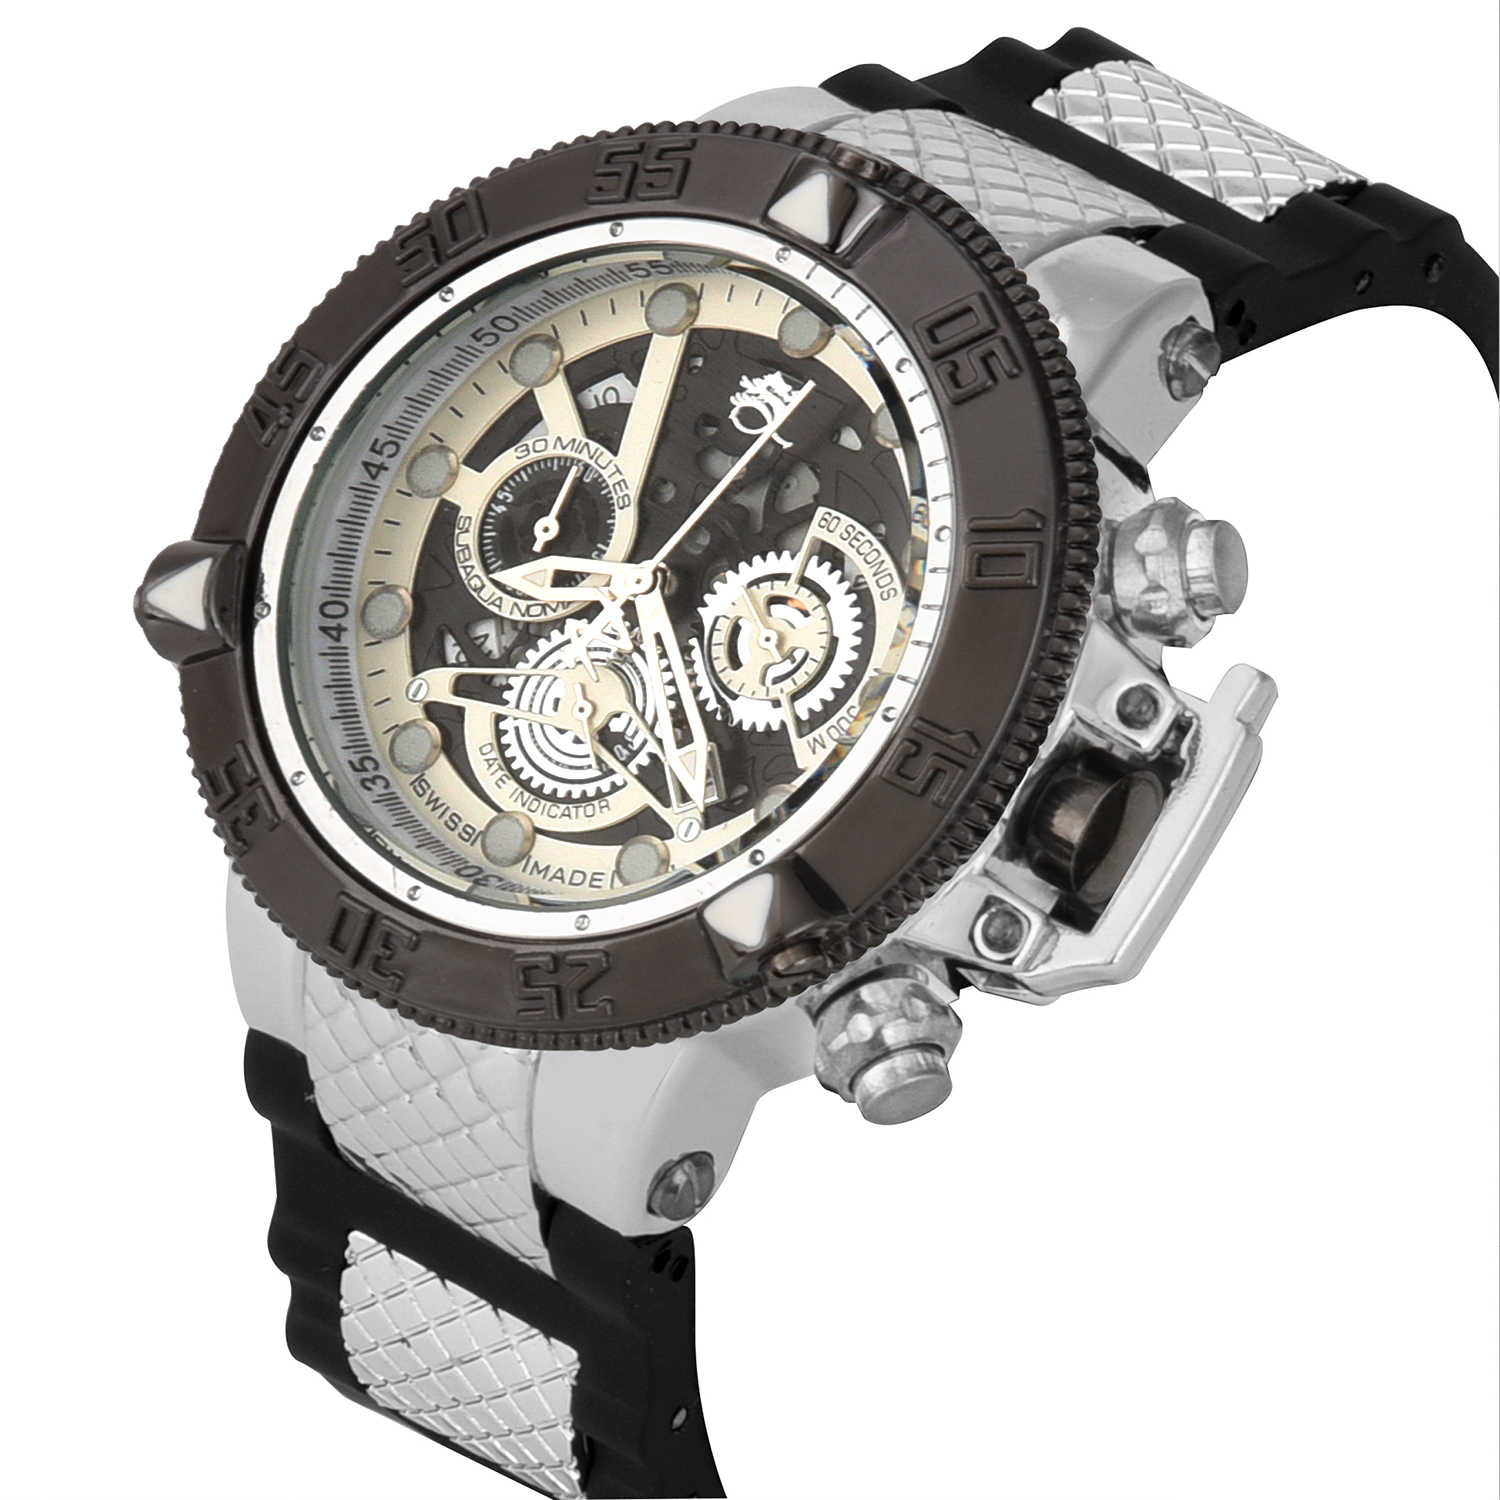 Brazil style High quality Big dial rotatable dial Run seconds to time multiple time zones multifunction man Quartz watch